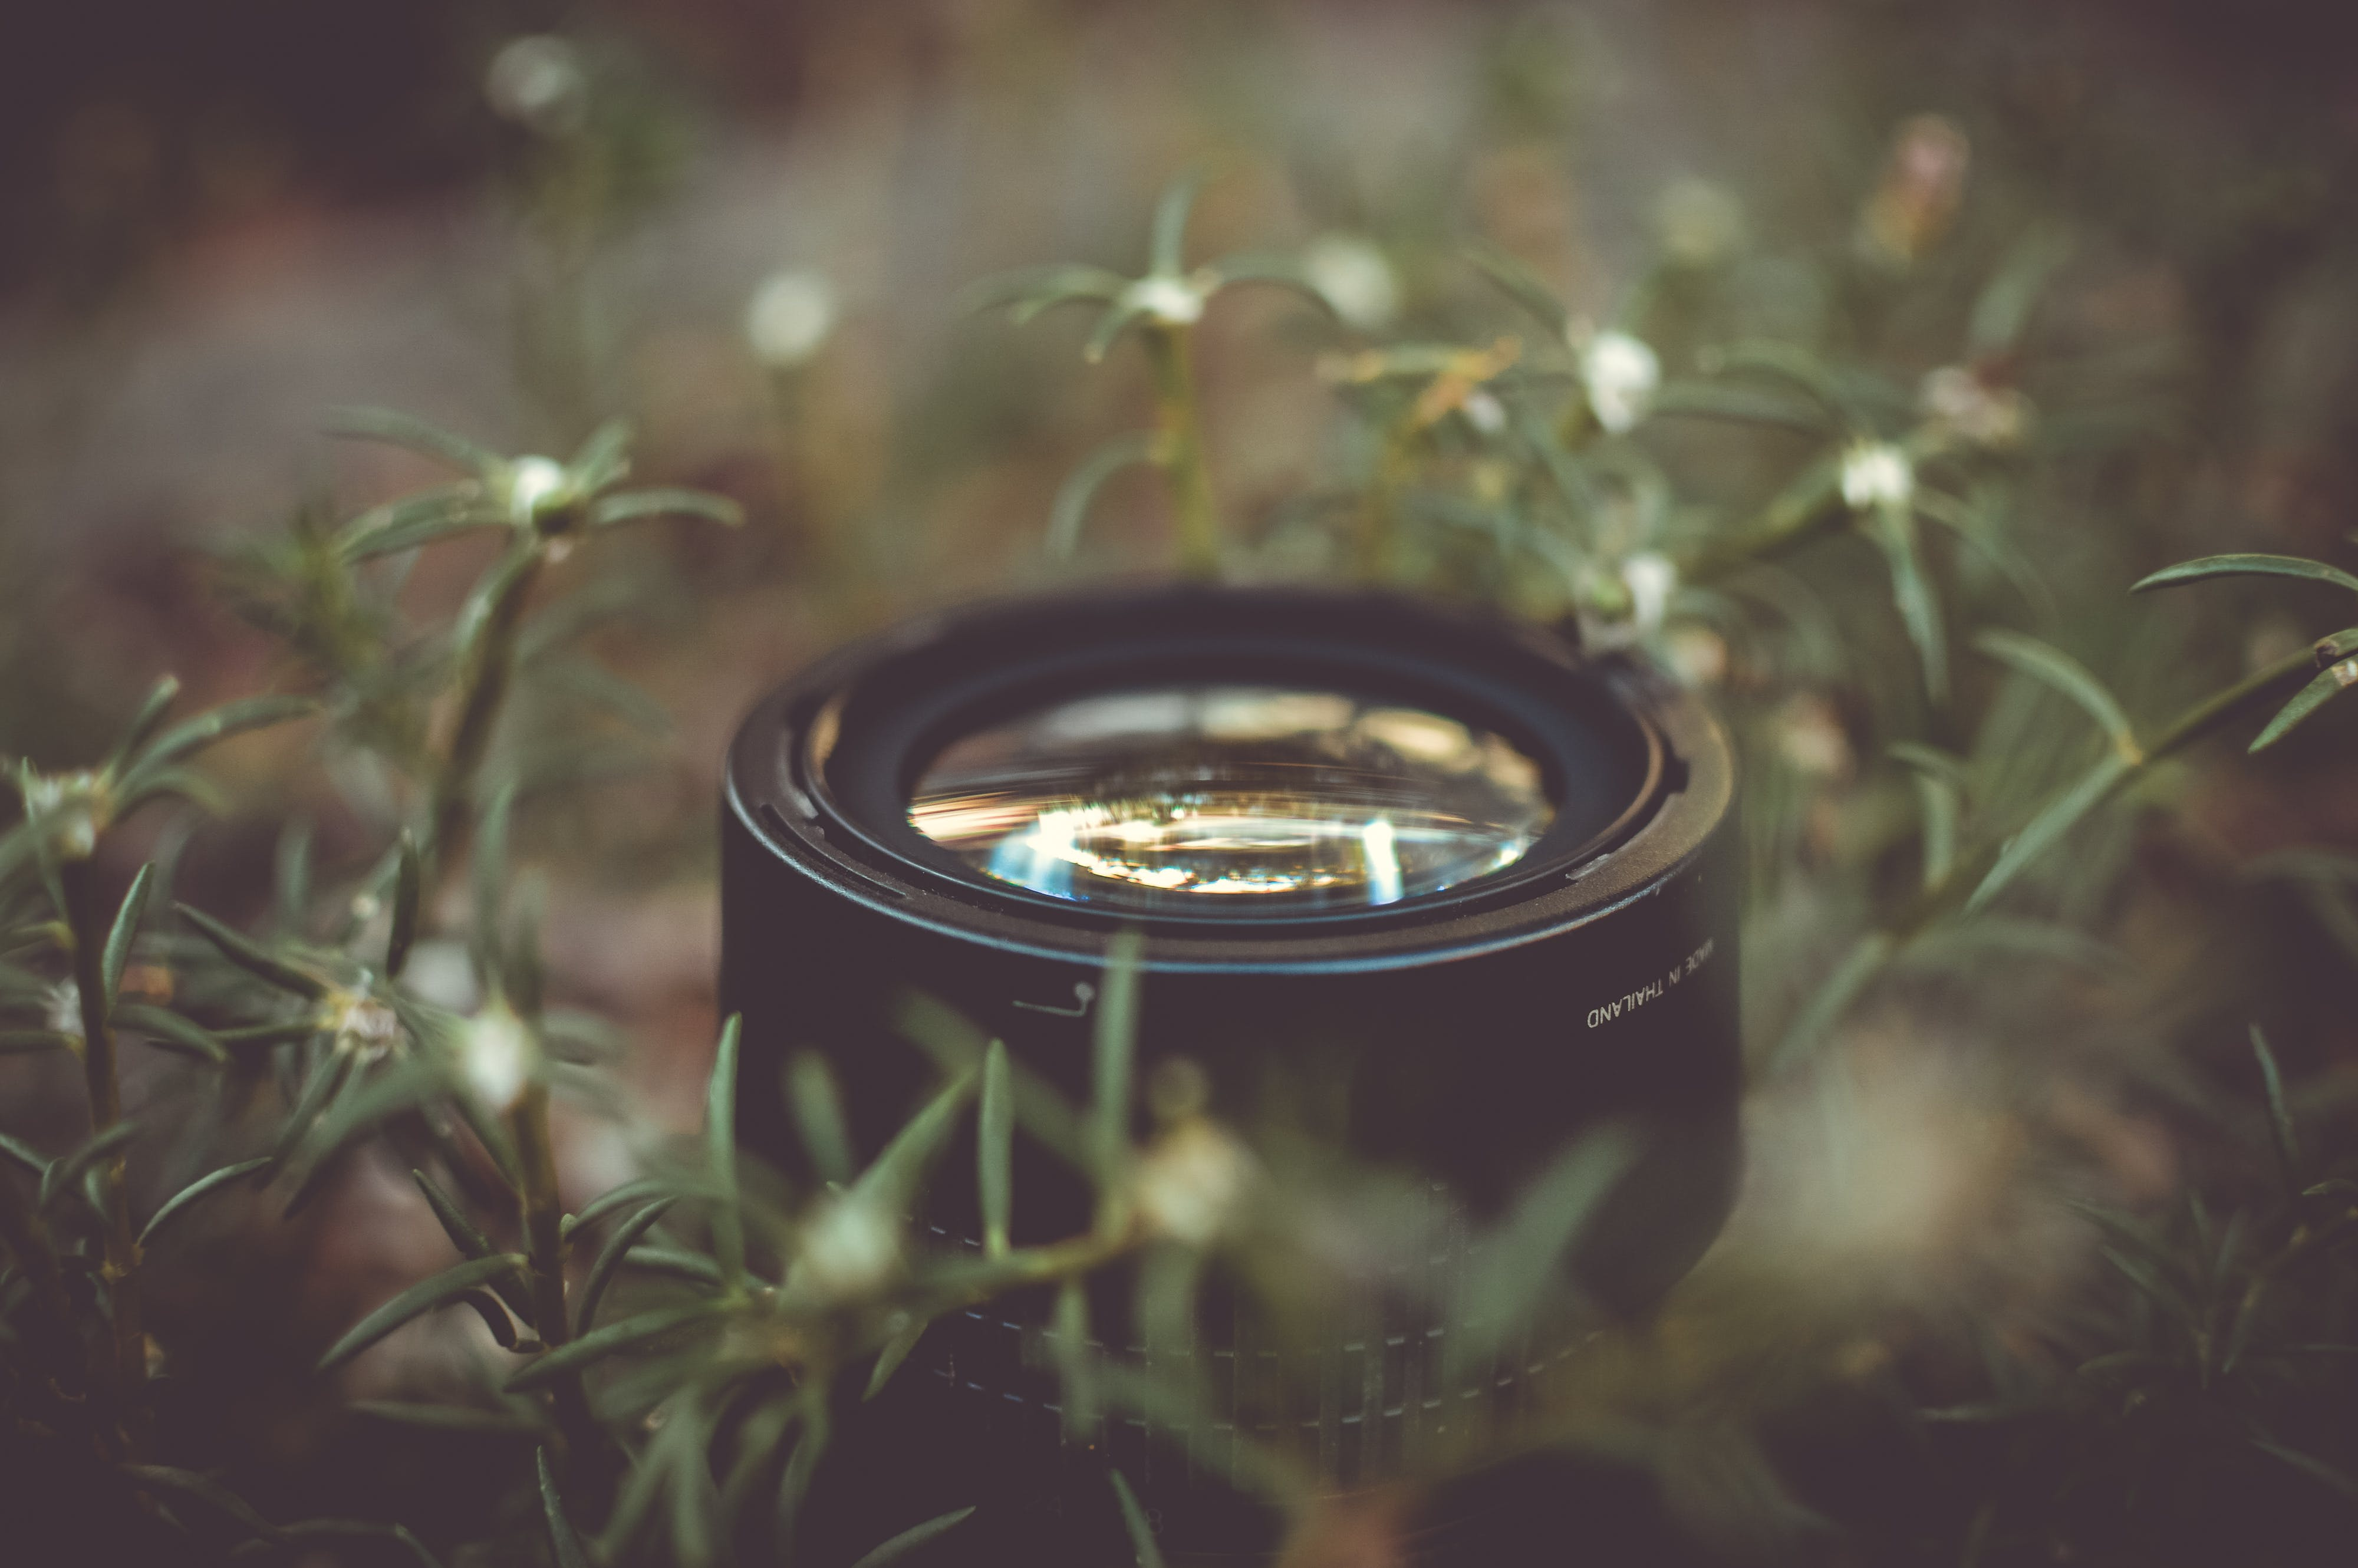 Camera Lens Surrounded by Green Outdoor Grass